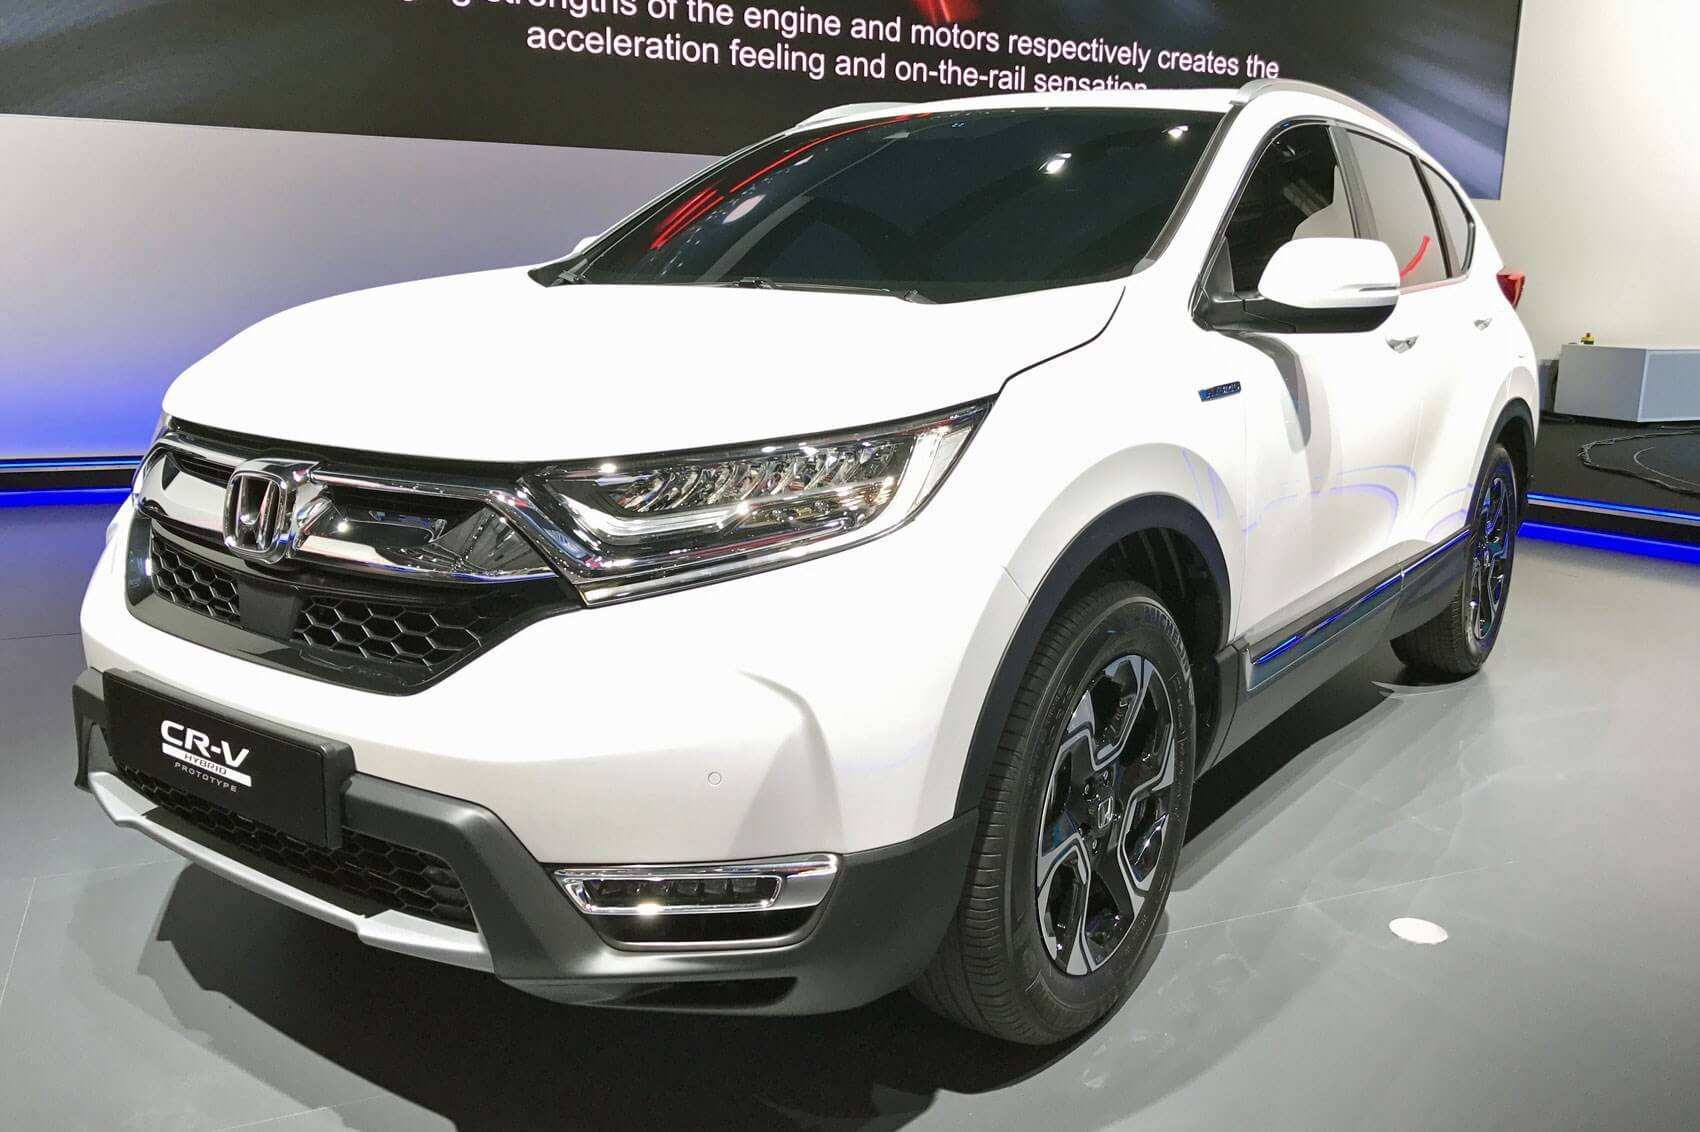 90 Great Honda Hrv 2020 Release Date Usa Exterior for Honda Hrv 2020 Release Date Usa